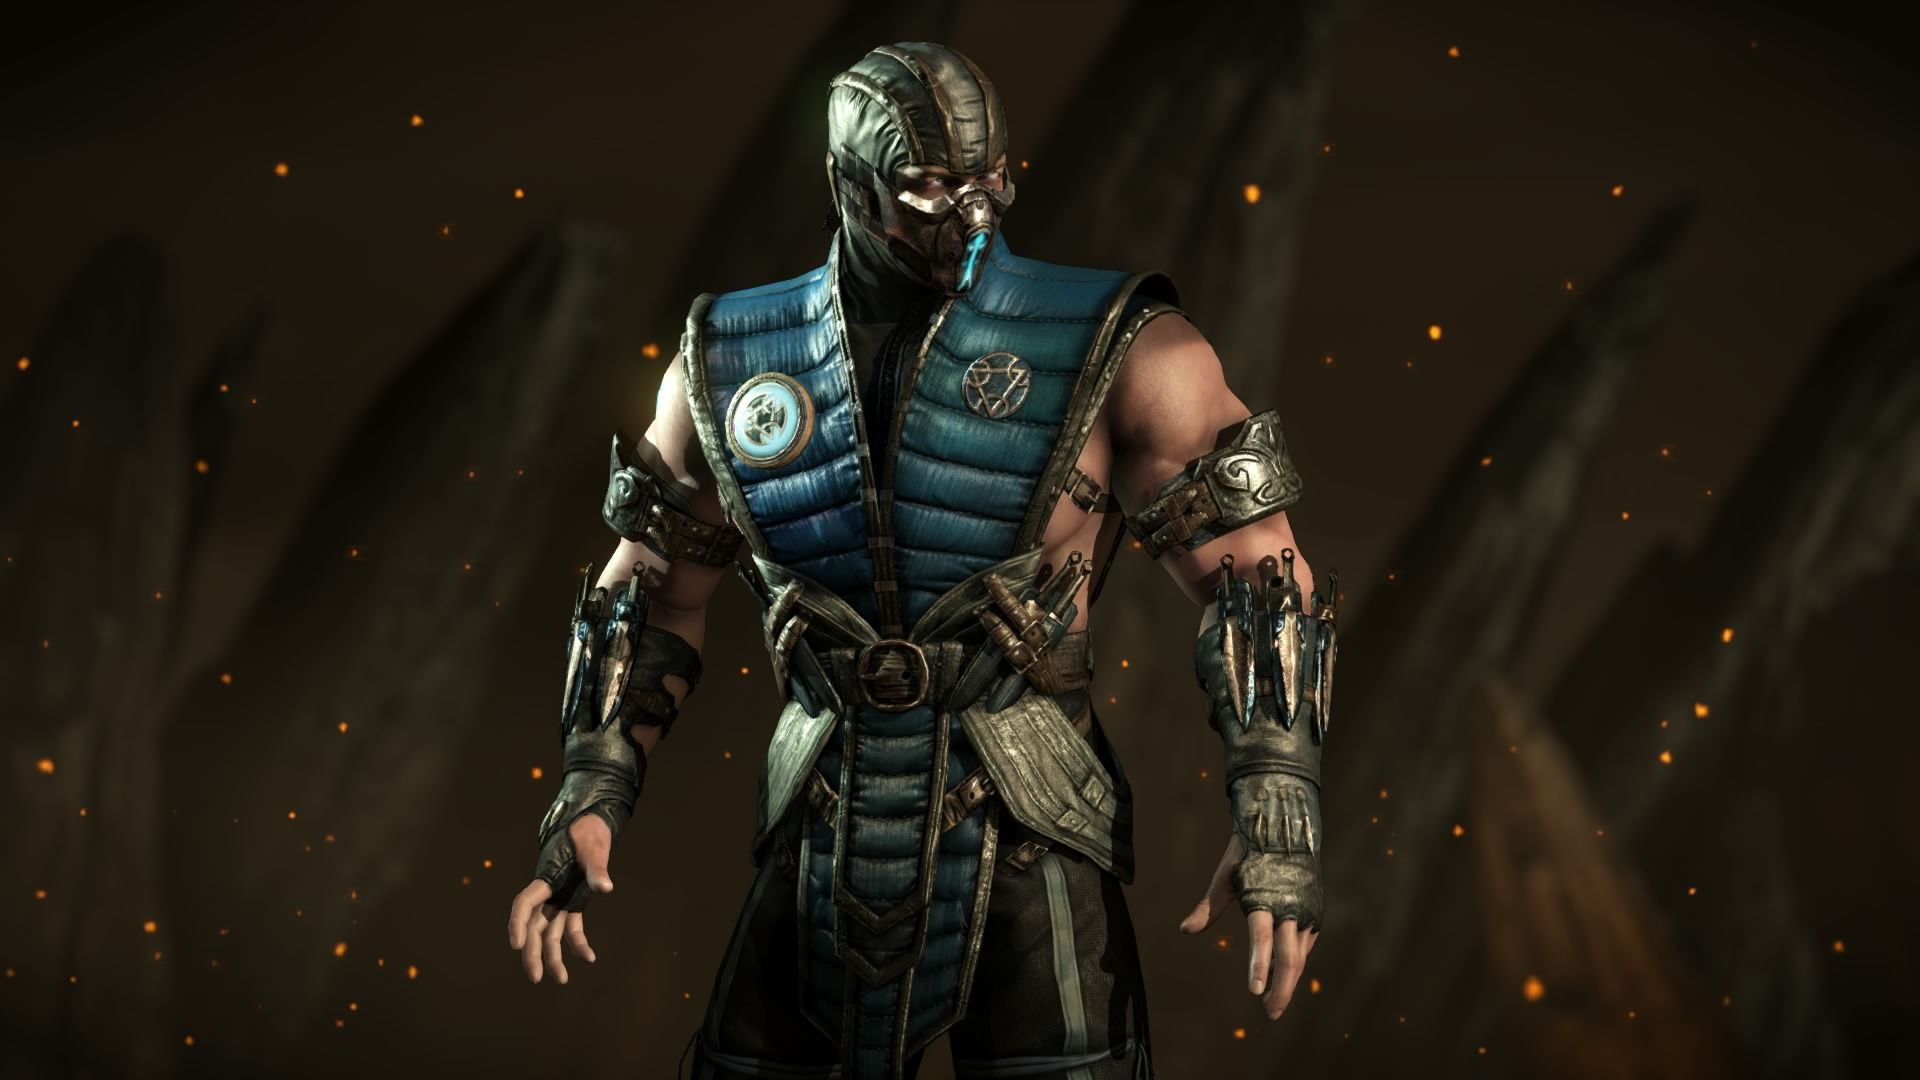 Mortal Kombat X:Sub-zero By Kabukiart157 On DeviantArt